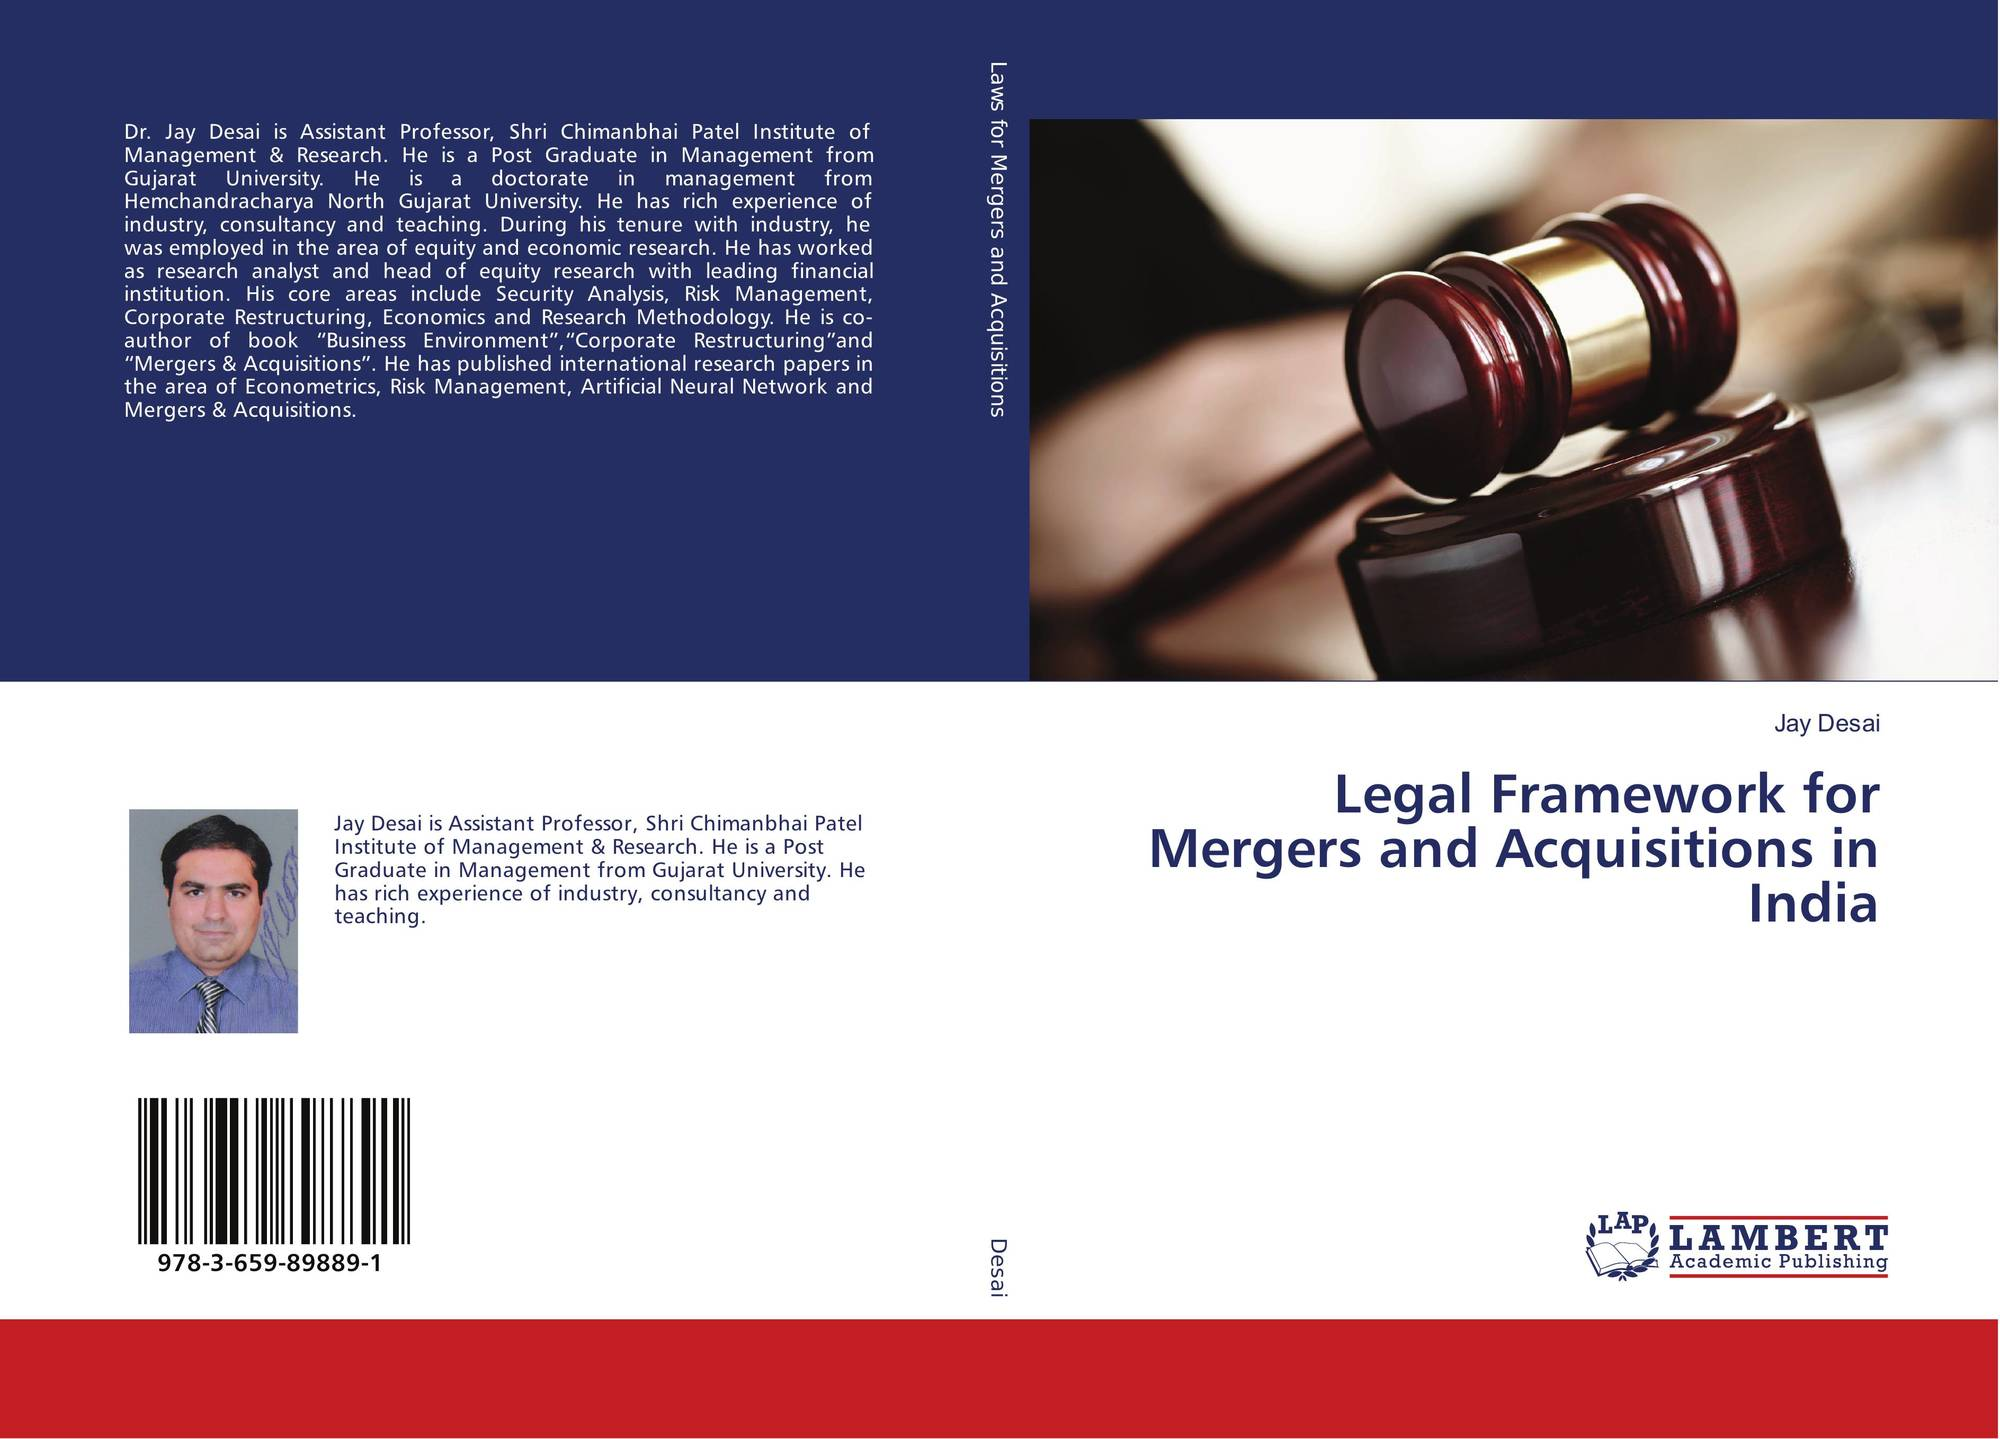 Research methodology in mergers and acquisition for banking in india